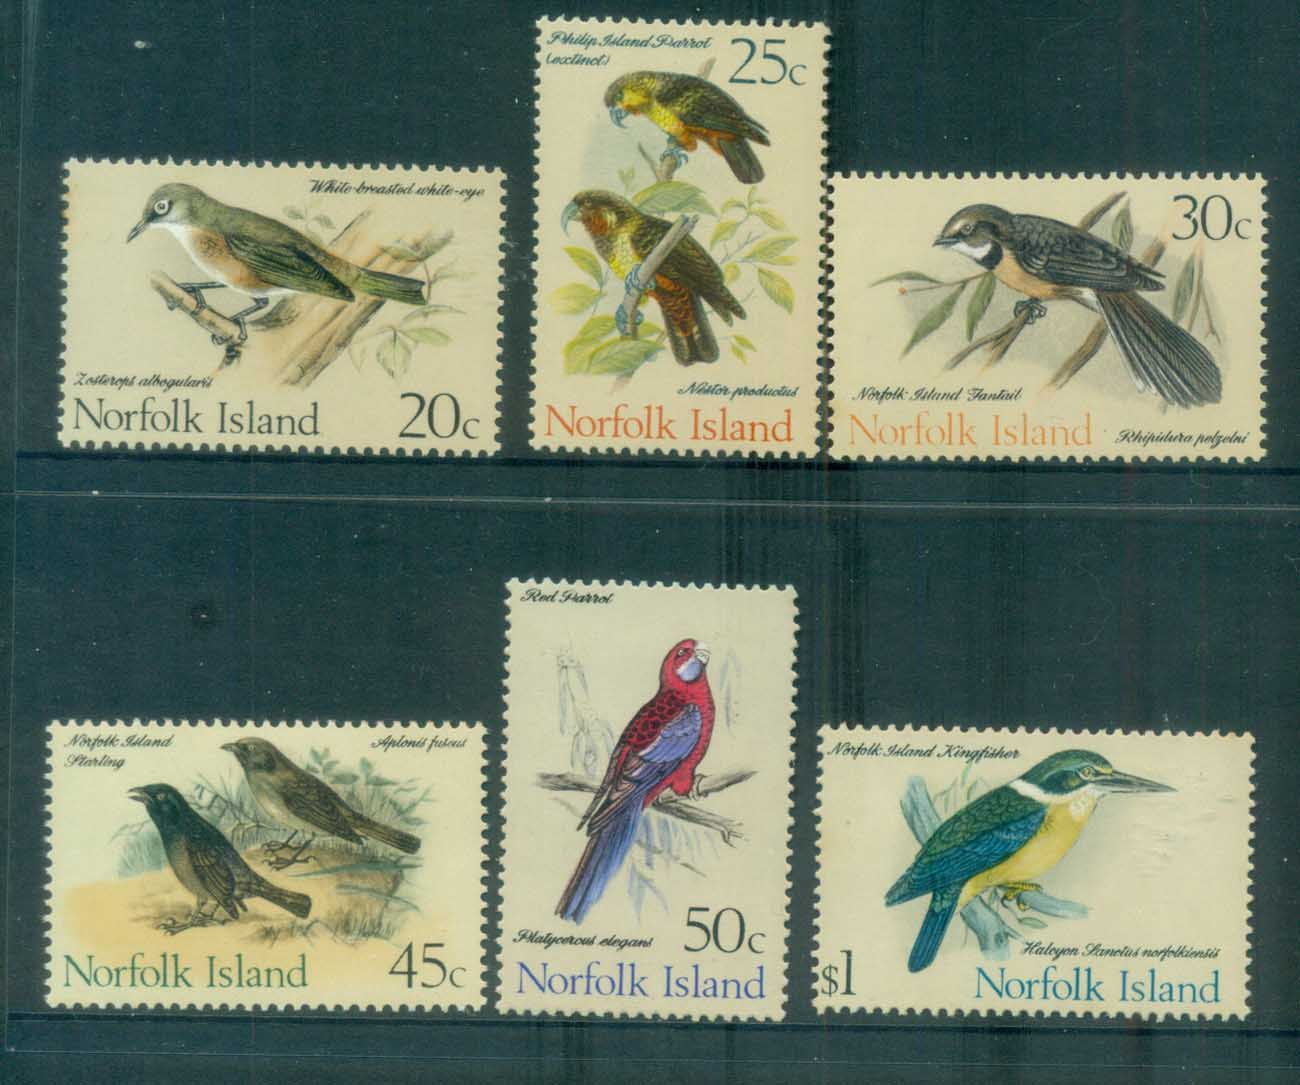 Norfolk Is 1971 Birds 20,25,30,45c,50c $1 (6v) MUH lot80569